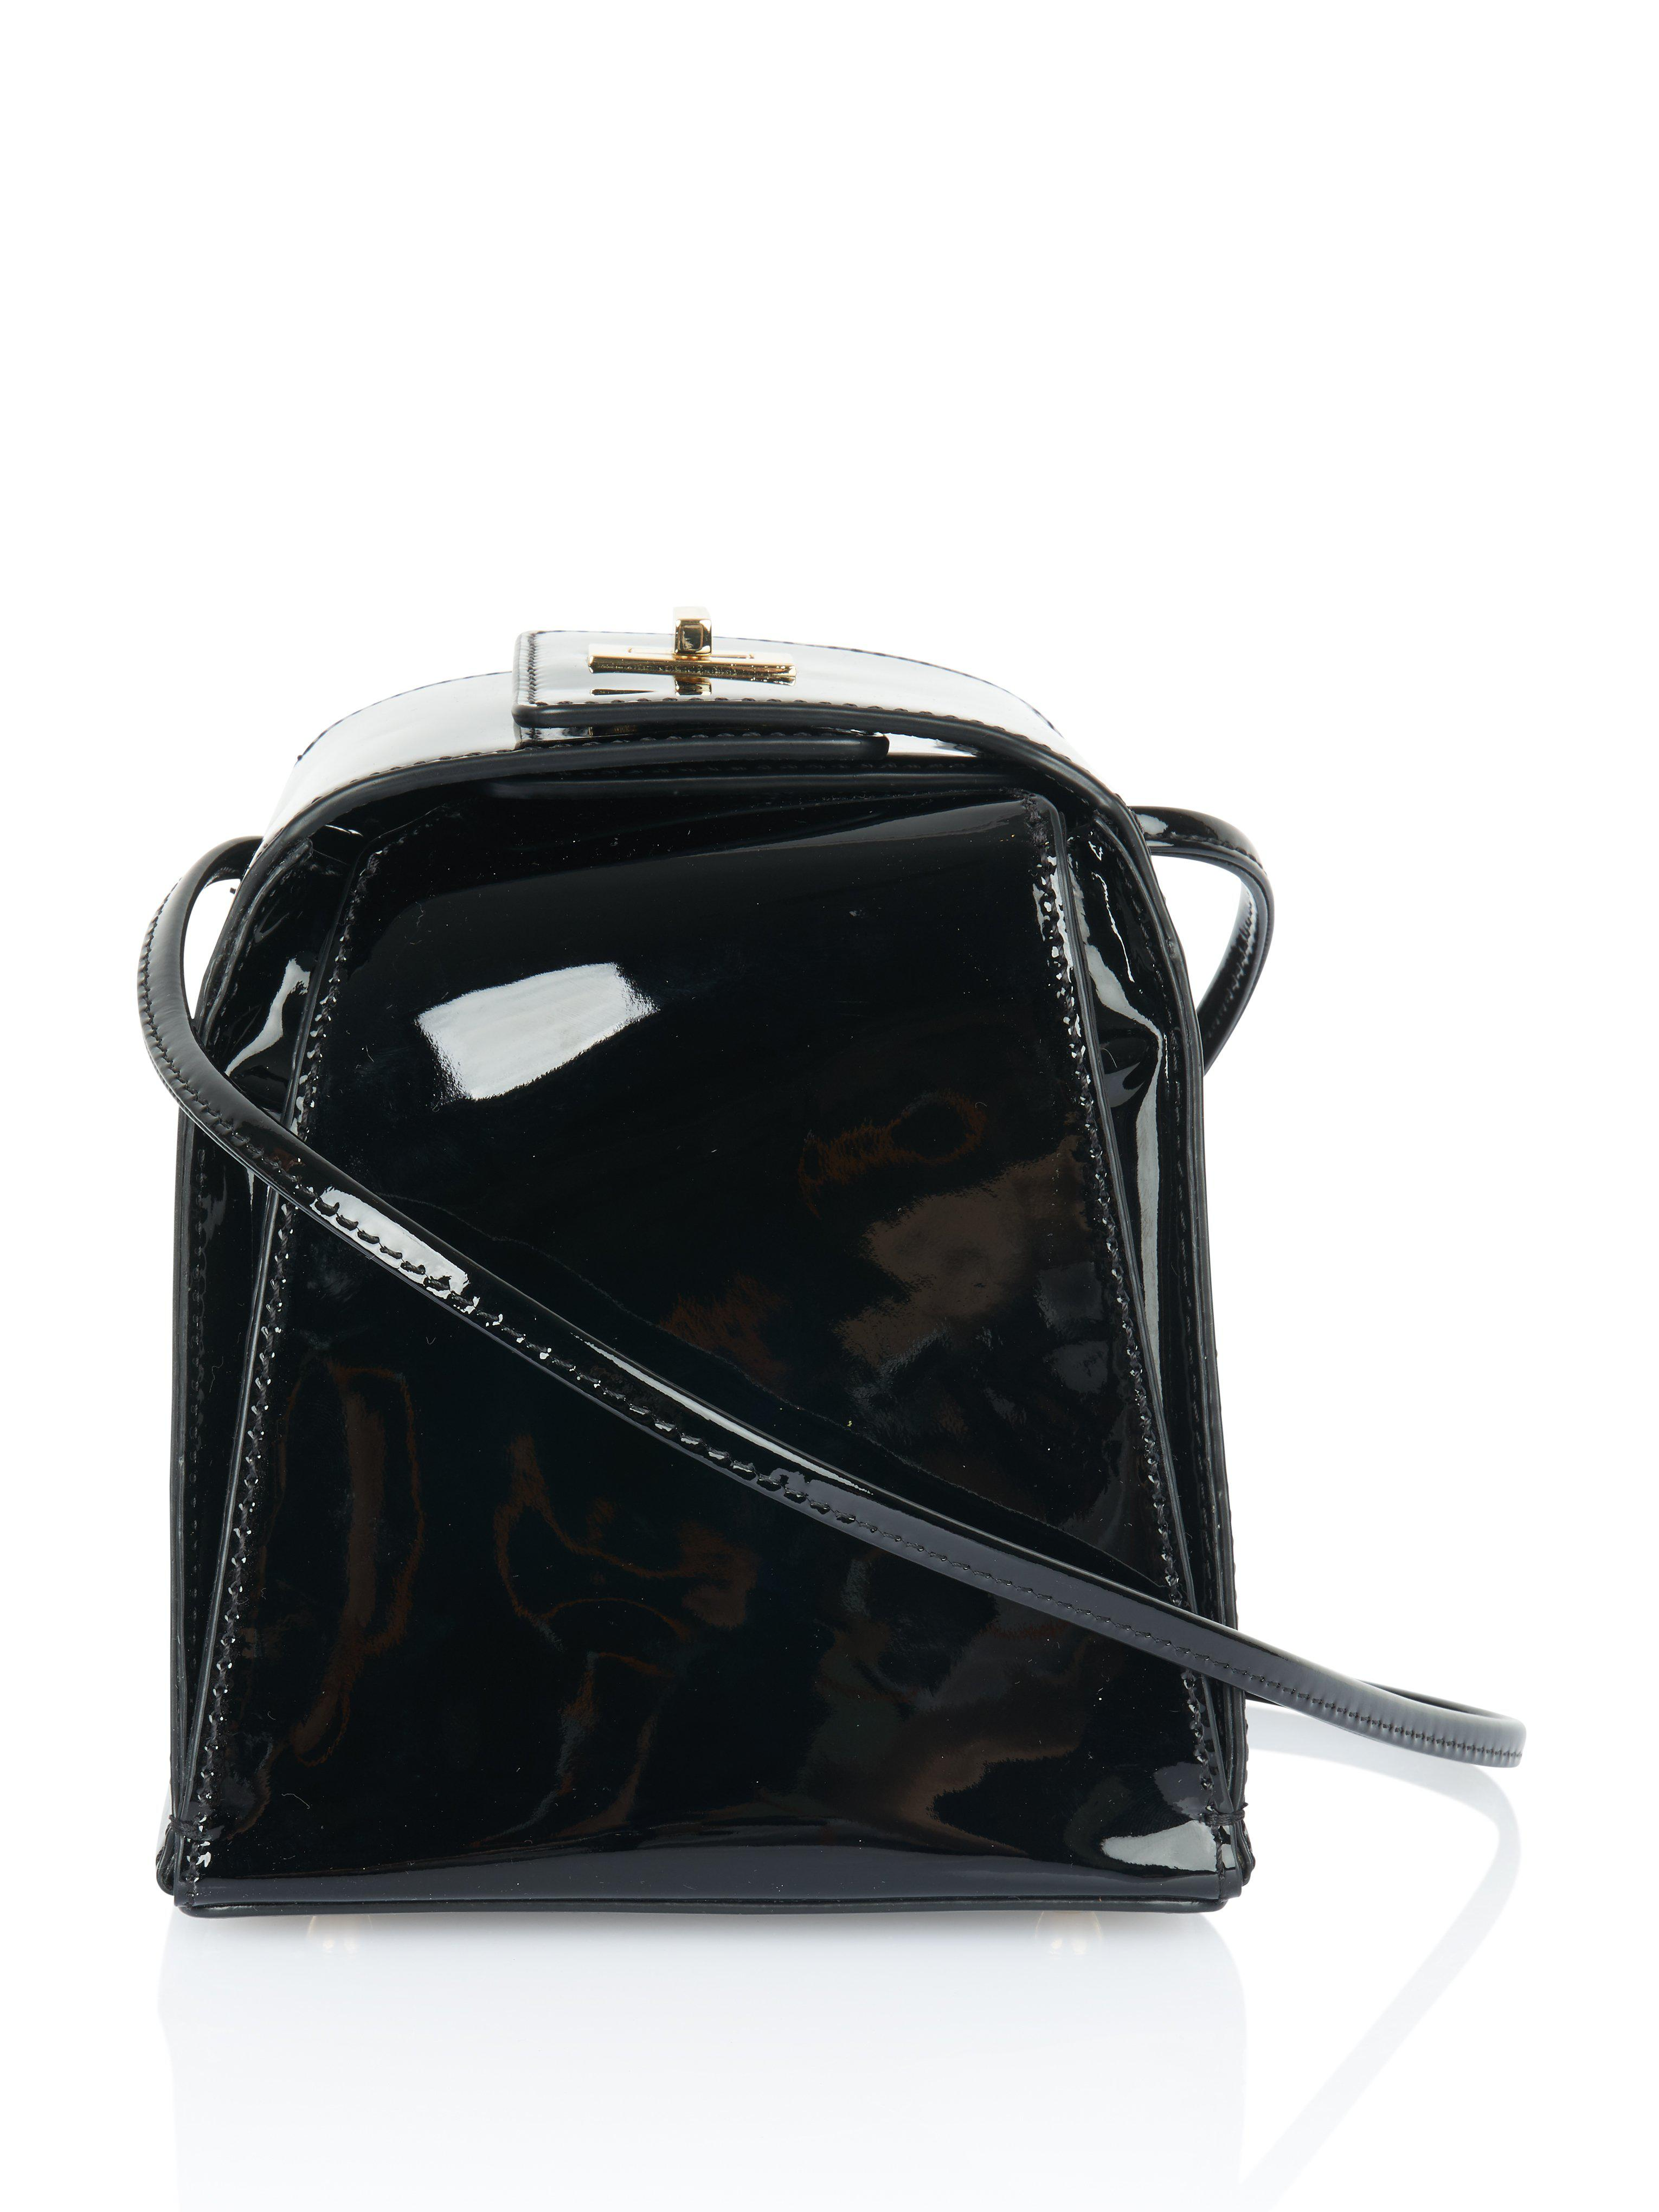 b726c5d65cdd Lyst - NEELY   CHLOE Pyramid Bag in Black